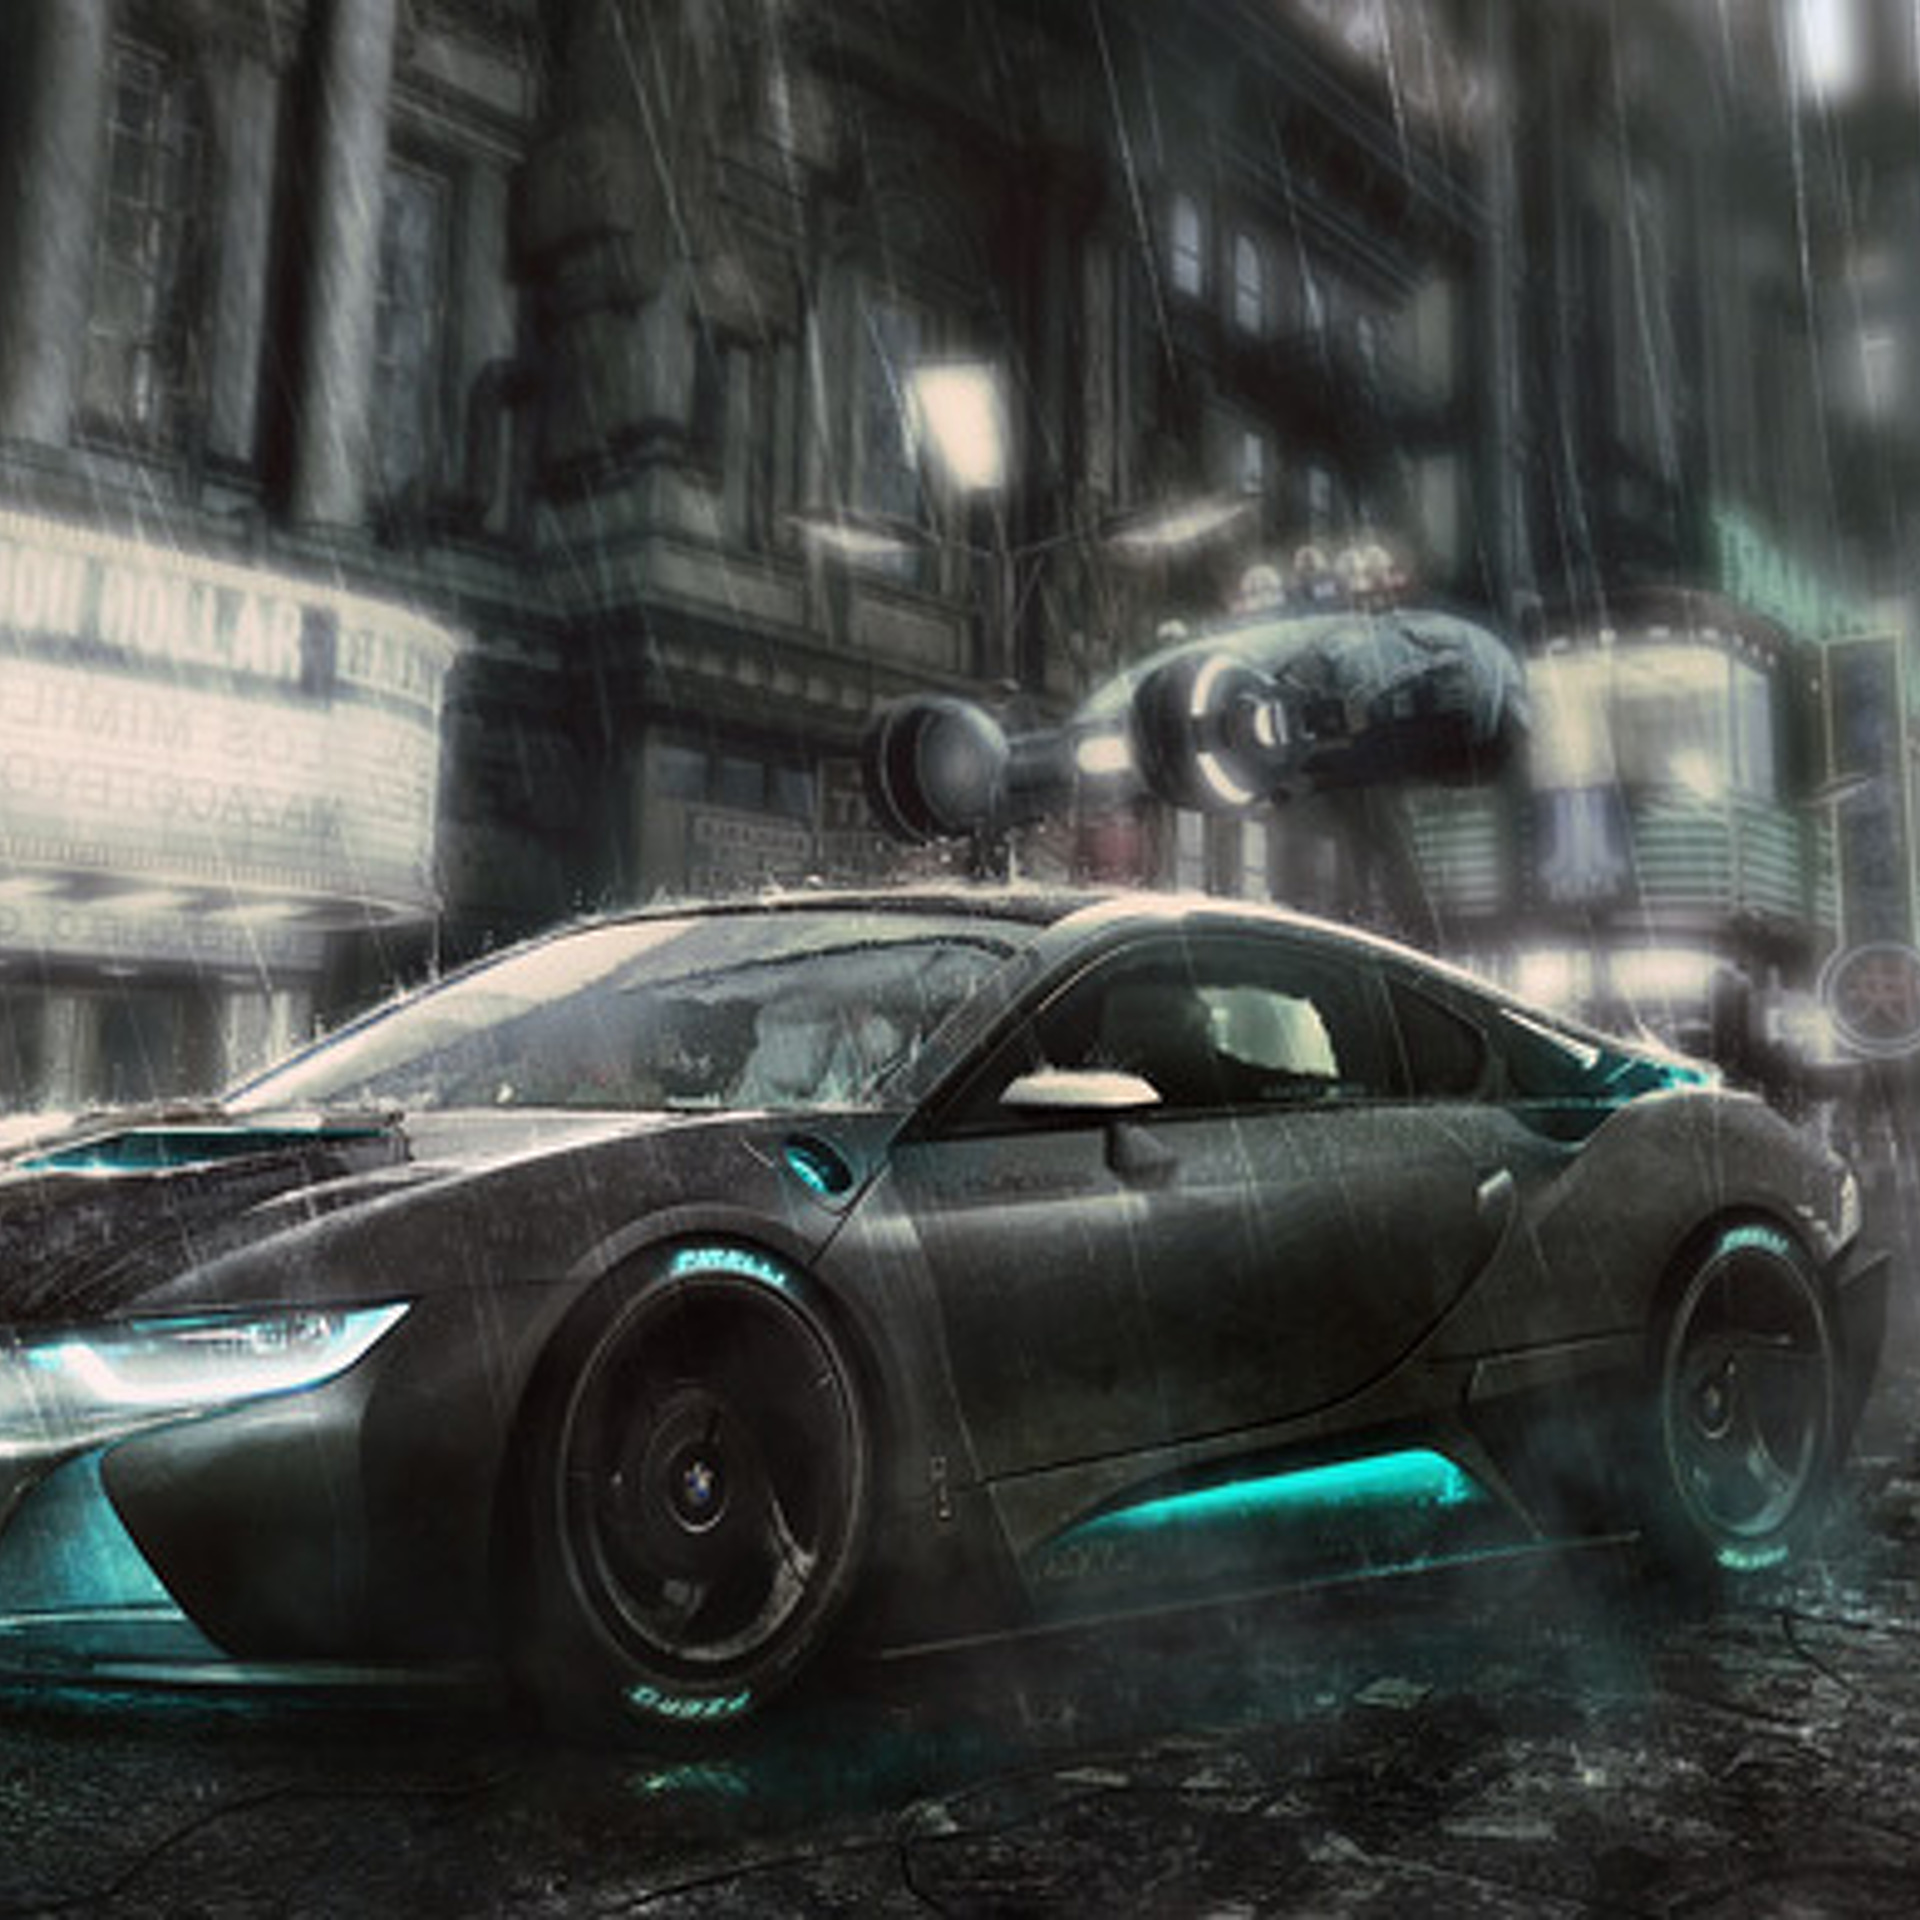 Stunning Render Drops the BMW i8 into Blade Runner [w/Video]